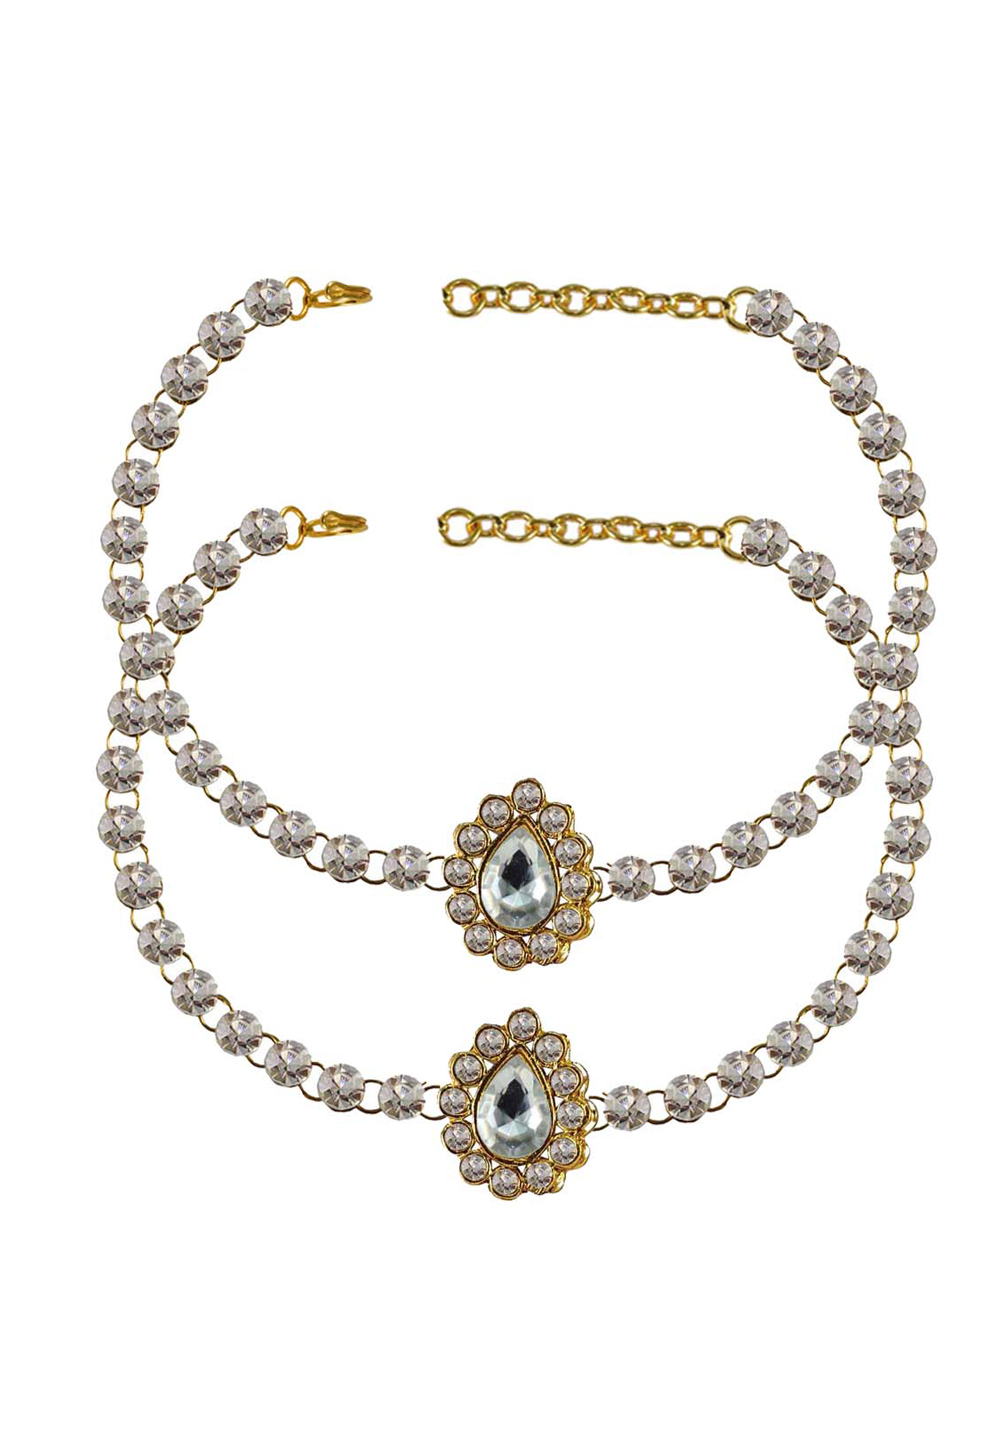 White Brass Gold Plated Anklets 171306